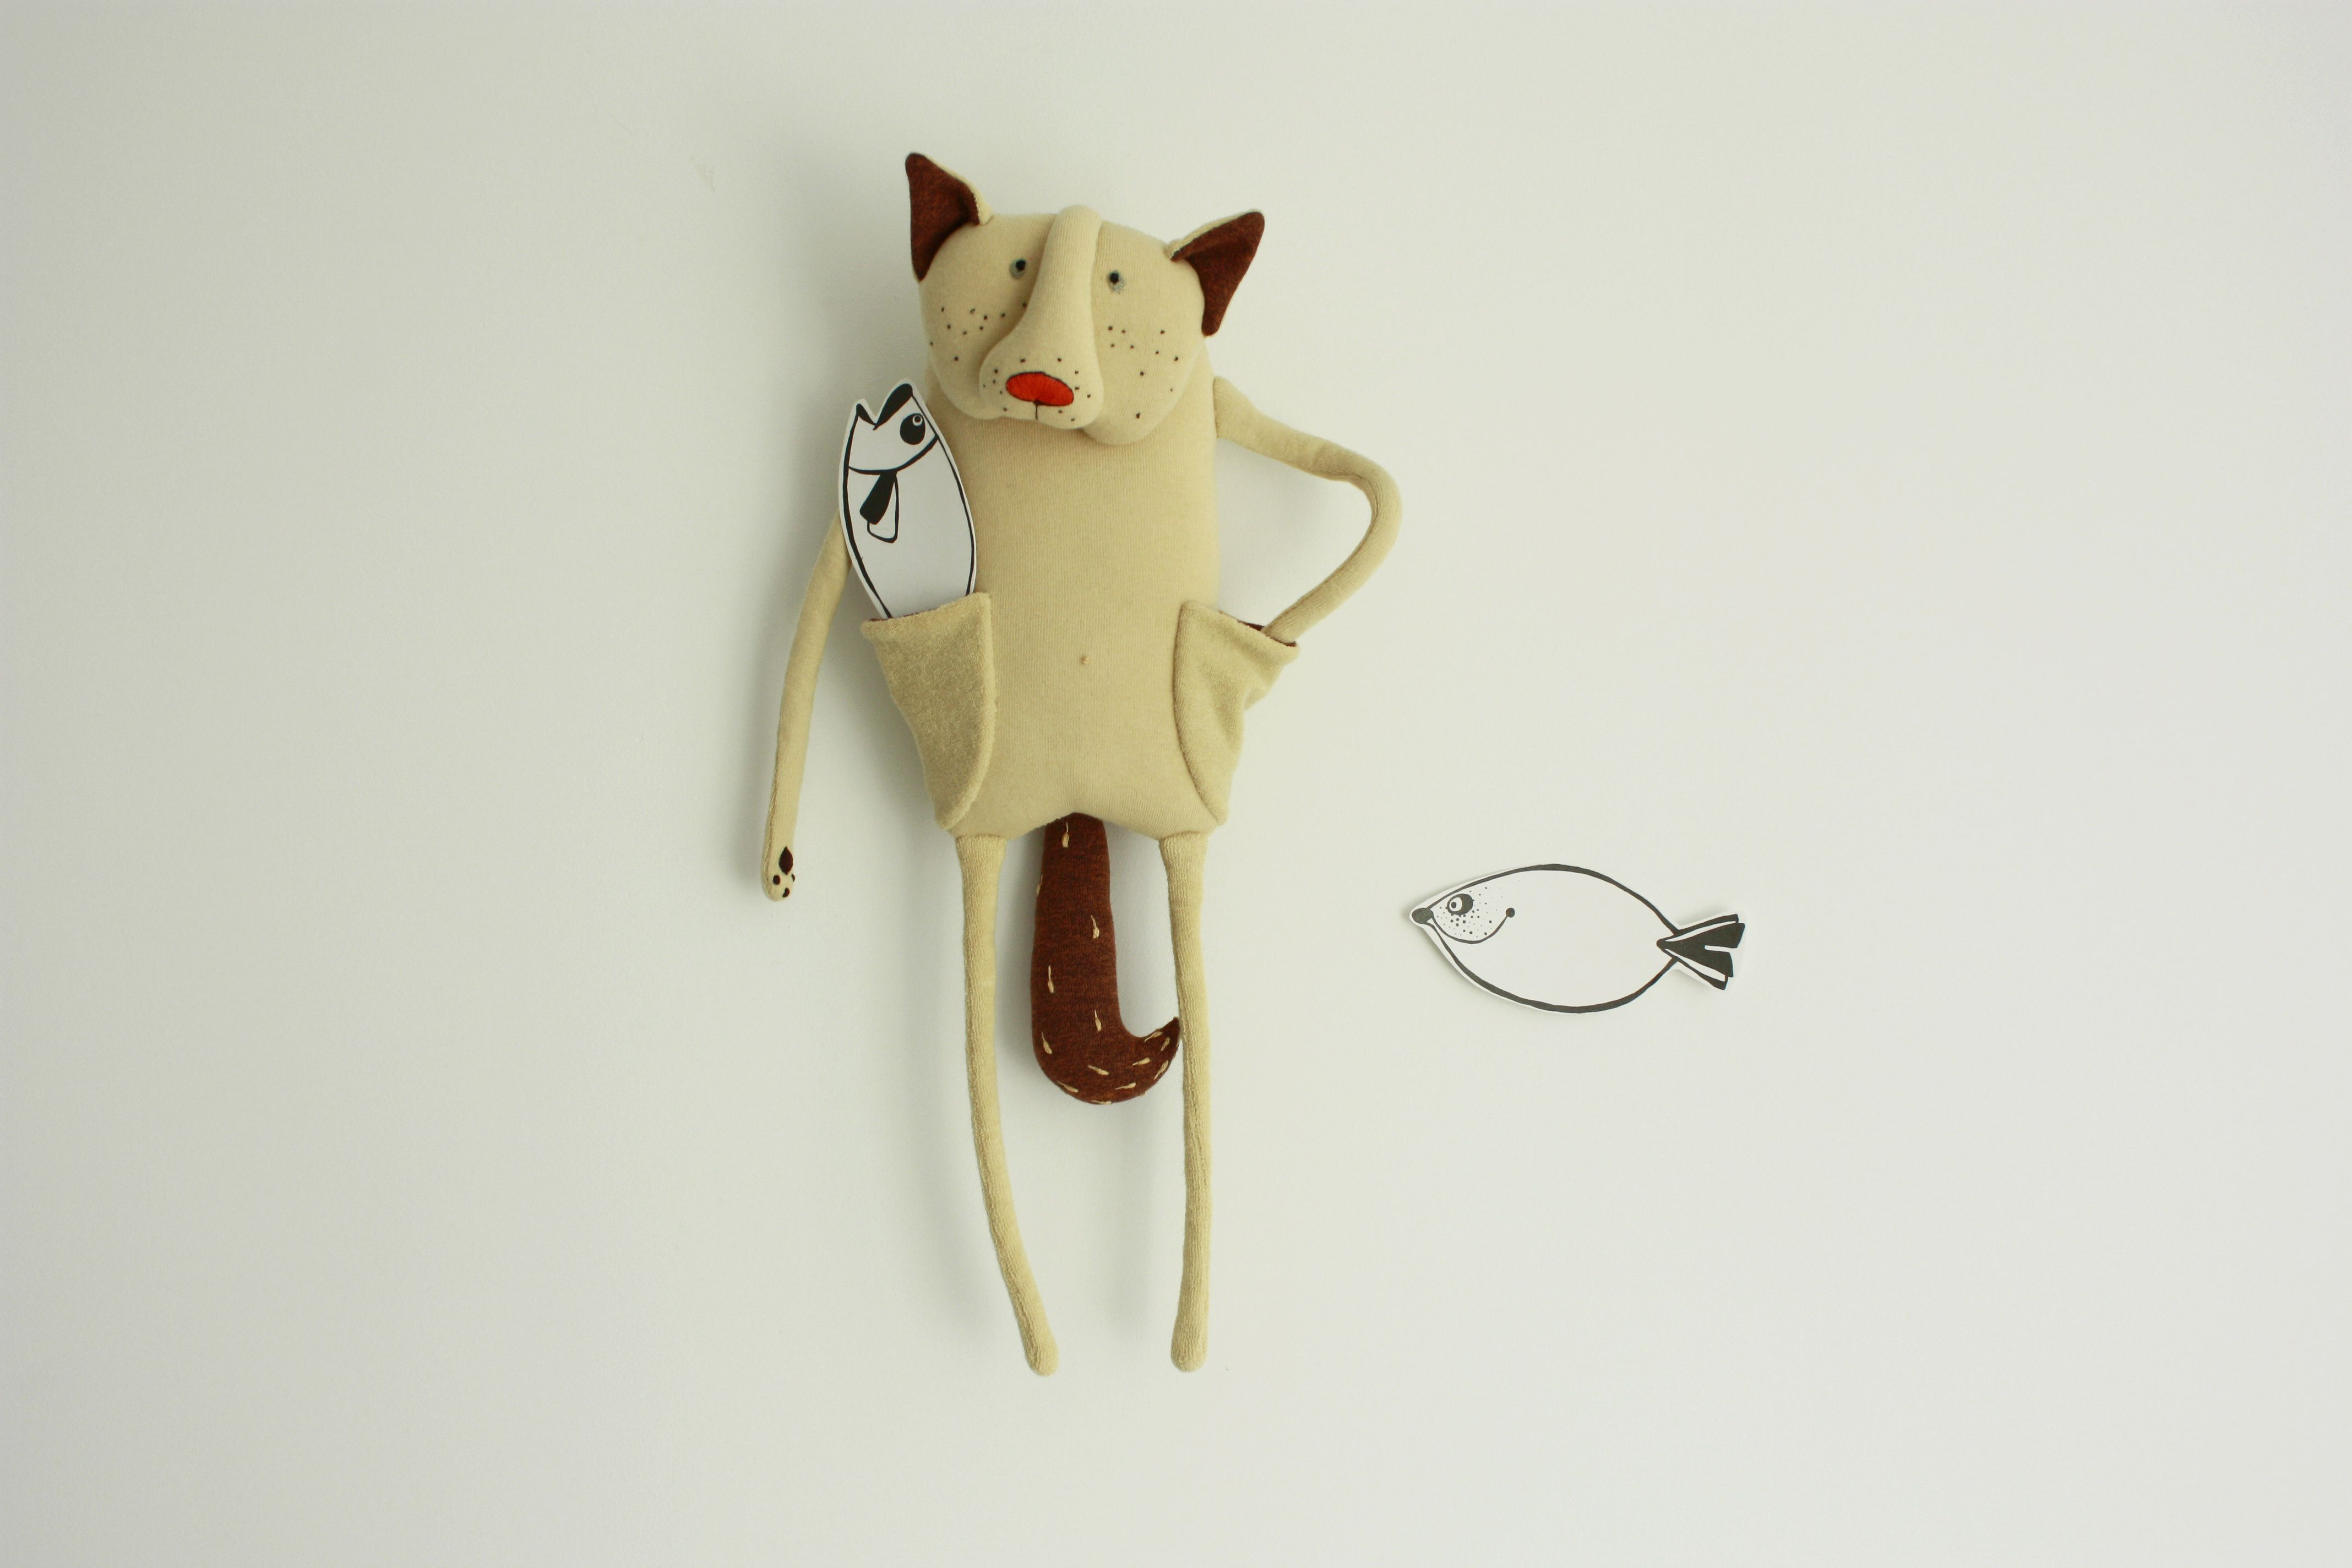 Birthday toys images  Itus fishing time Sandy cat plush toy with to pockets and brown